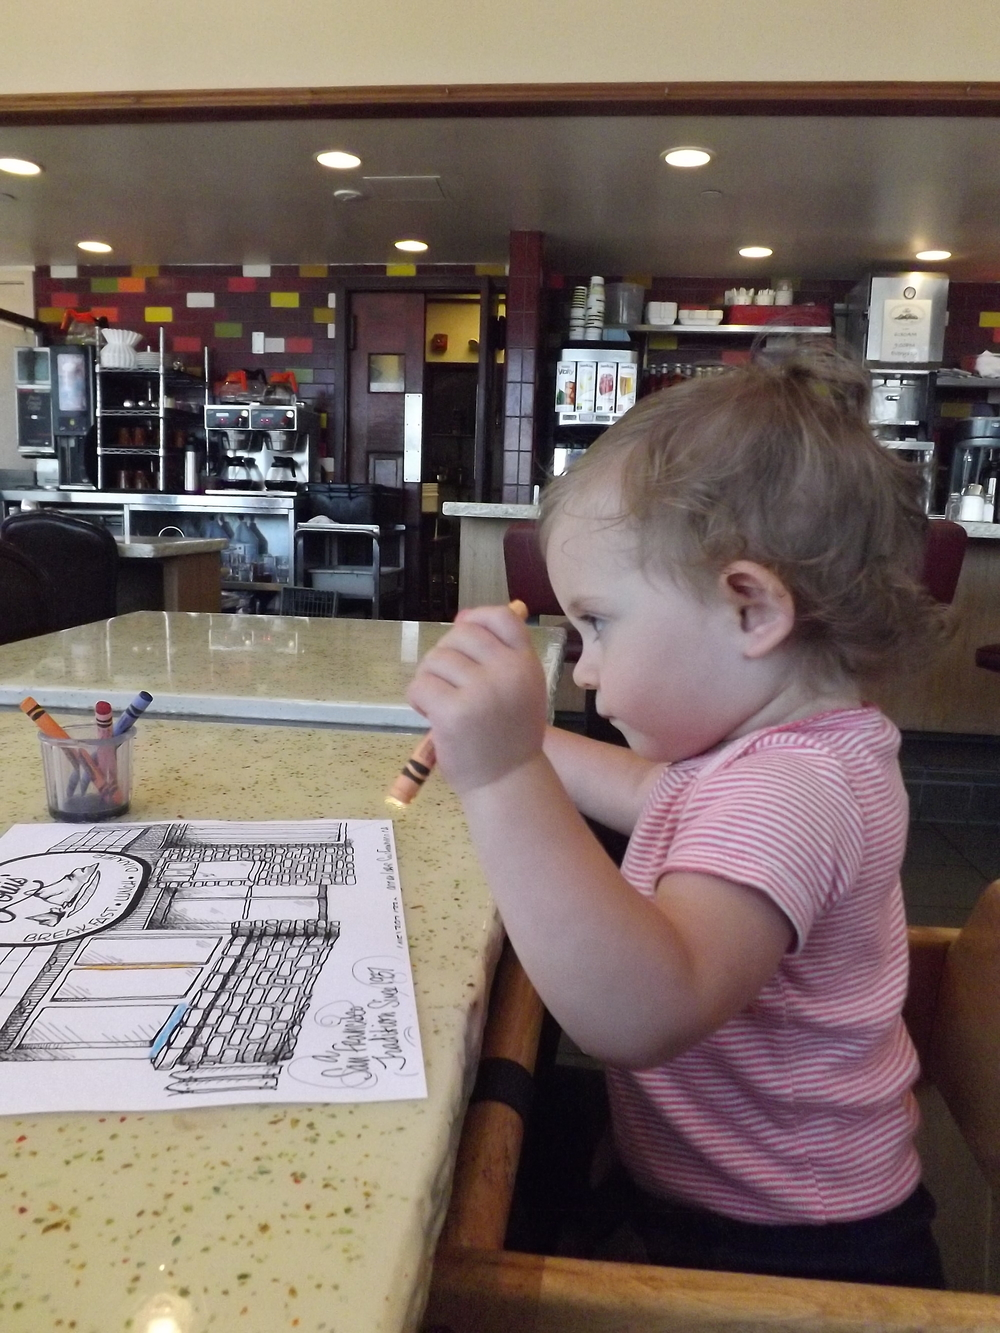 Our happy traveler coloring her picture while we wait for lunch to arrive